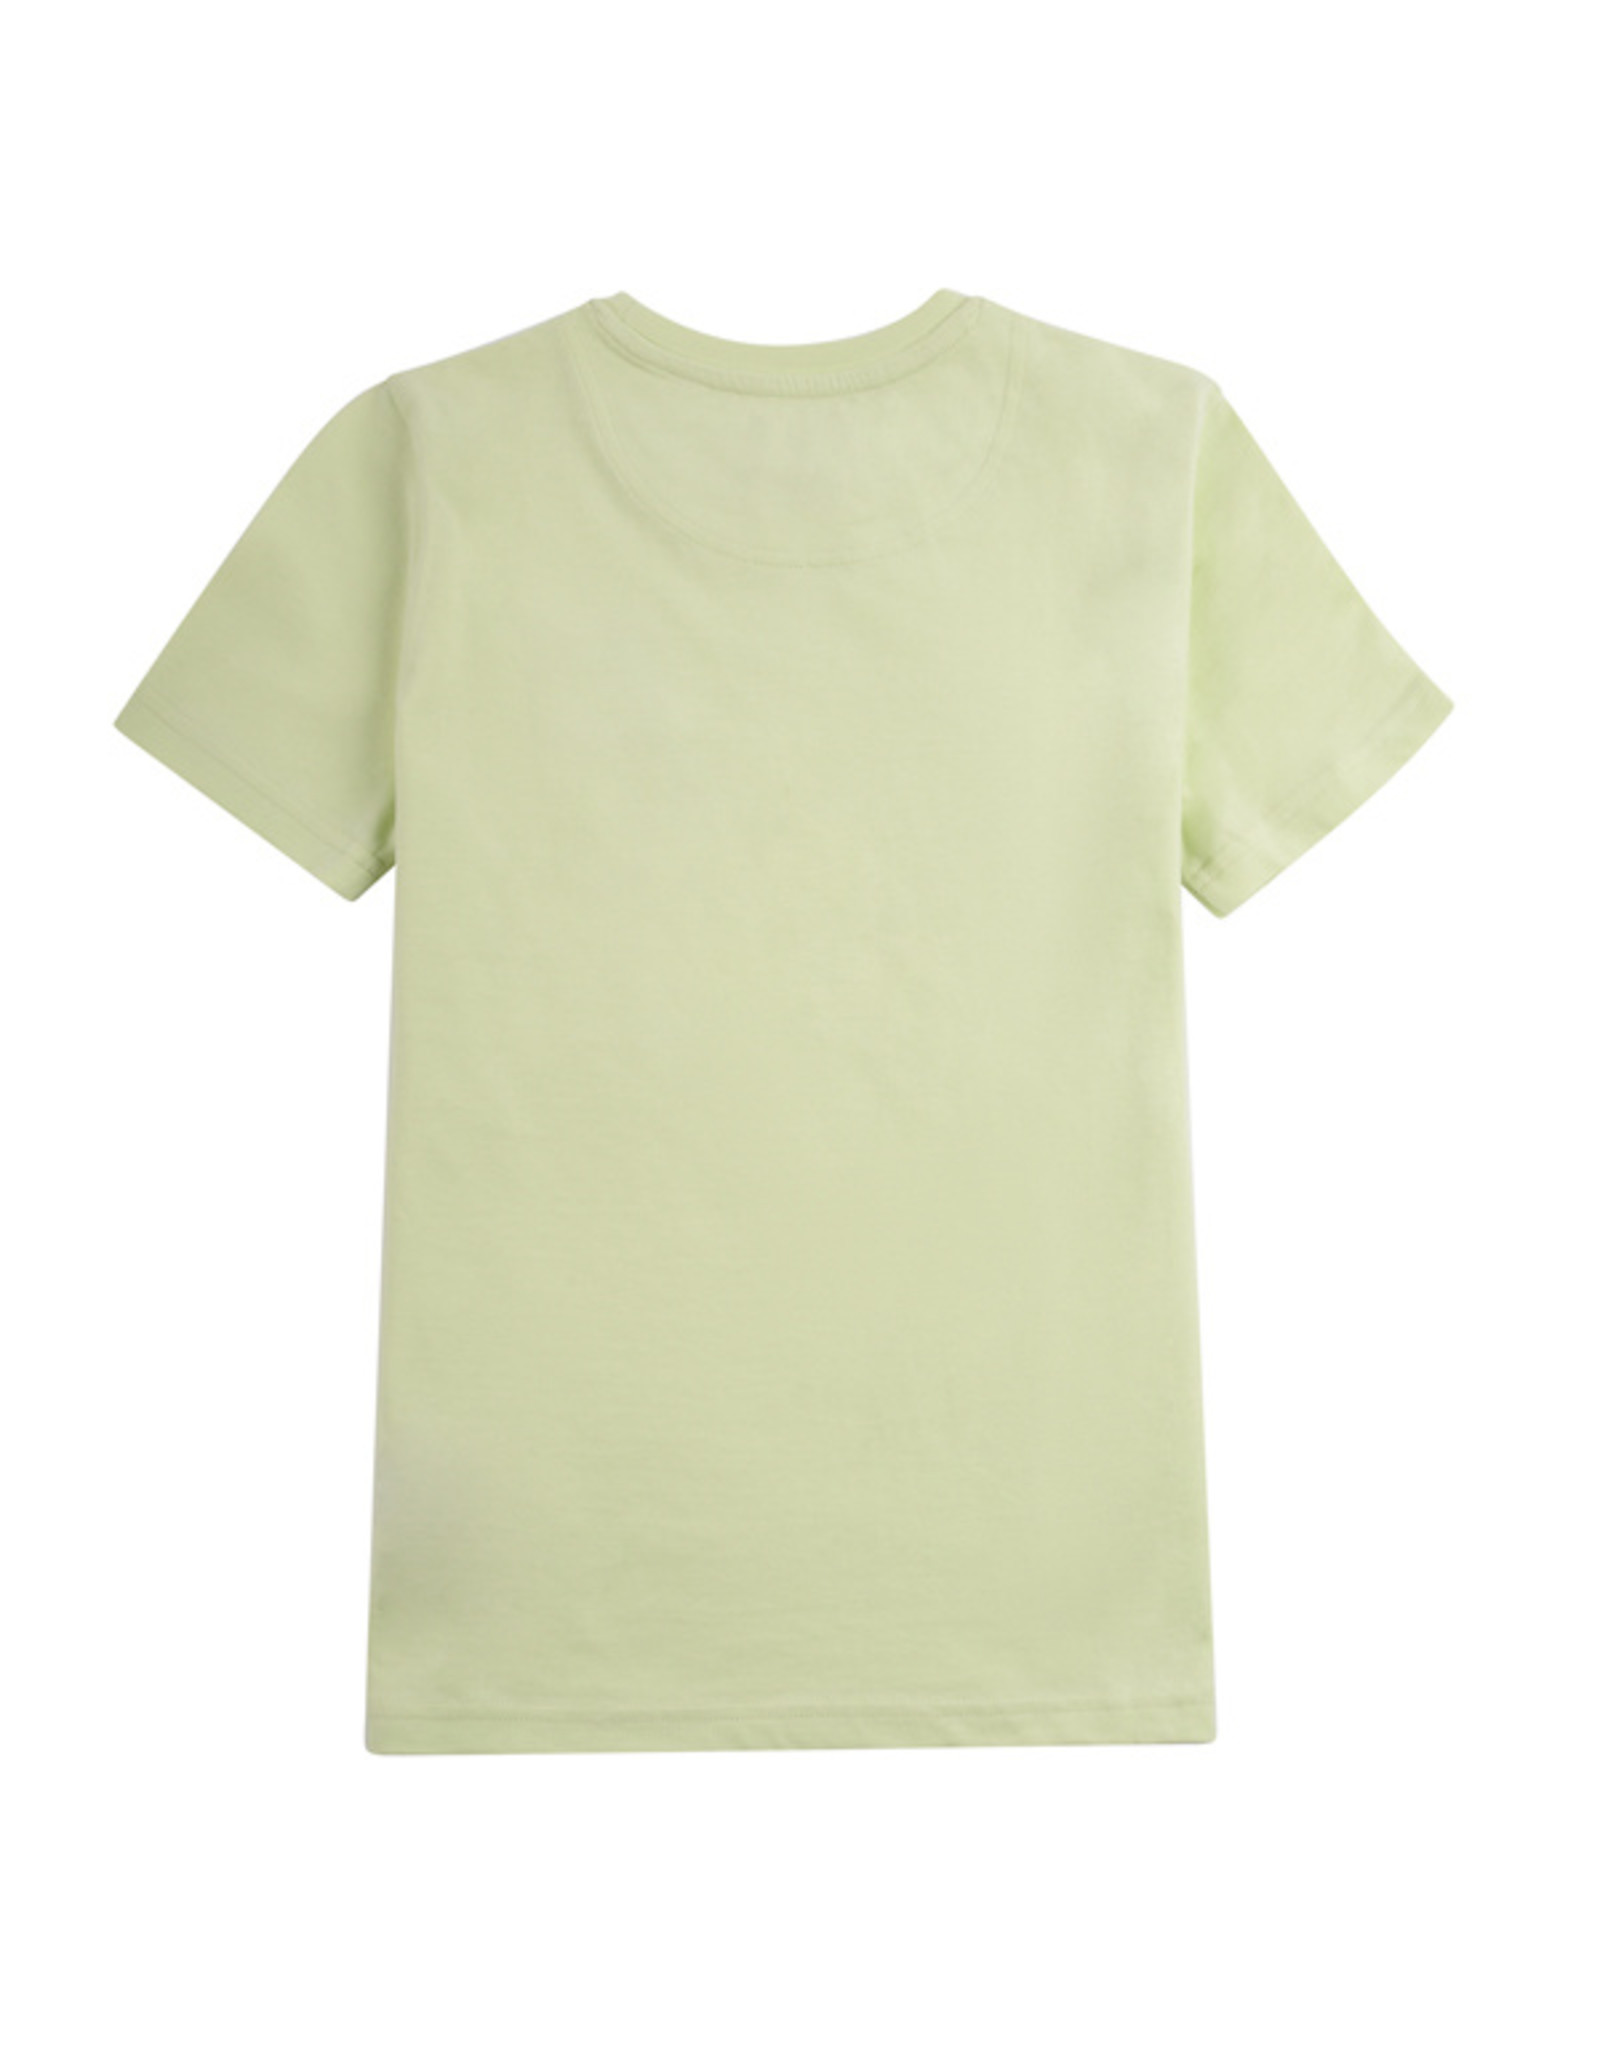 Lyle & Scott Boys Casual Classic Tee Lime Cream